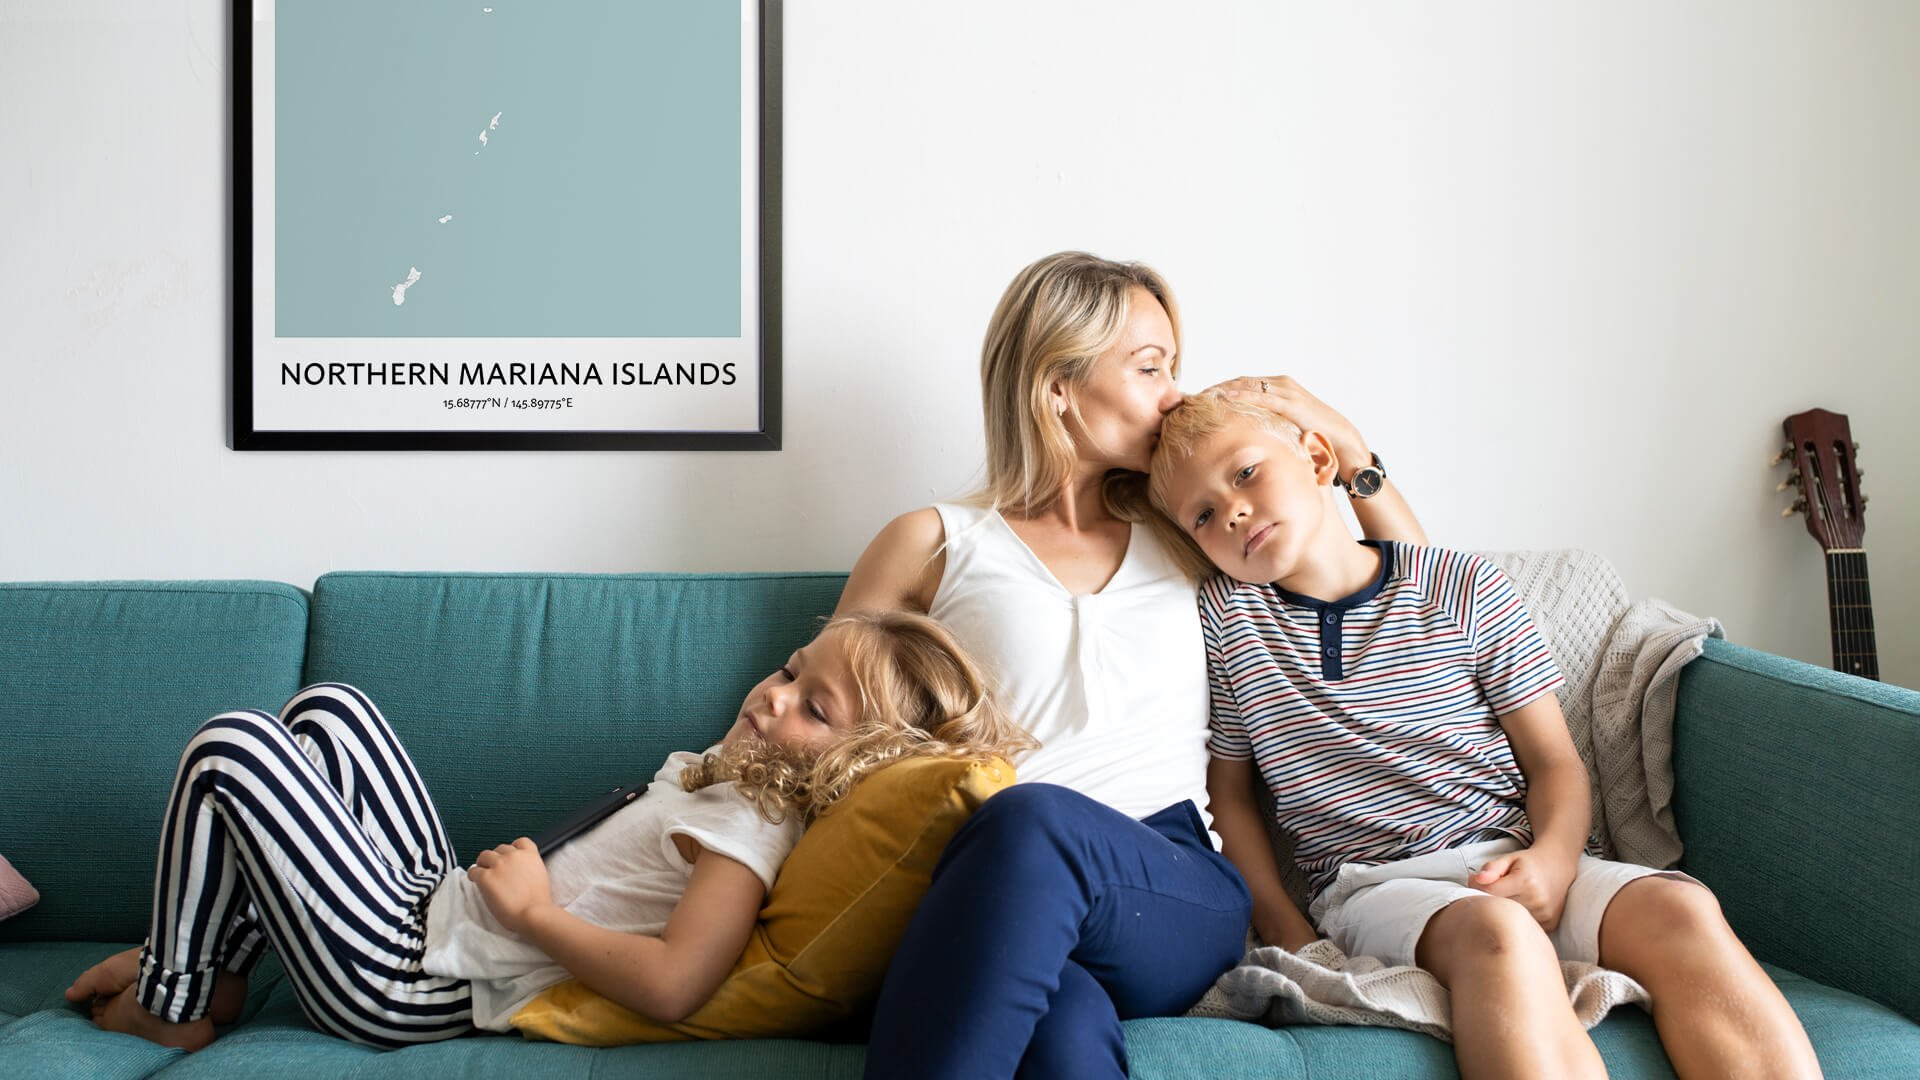 Northern Mariana Islands map poster